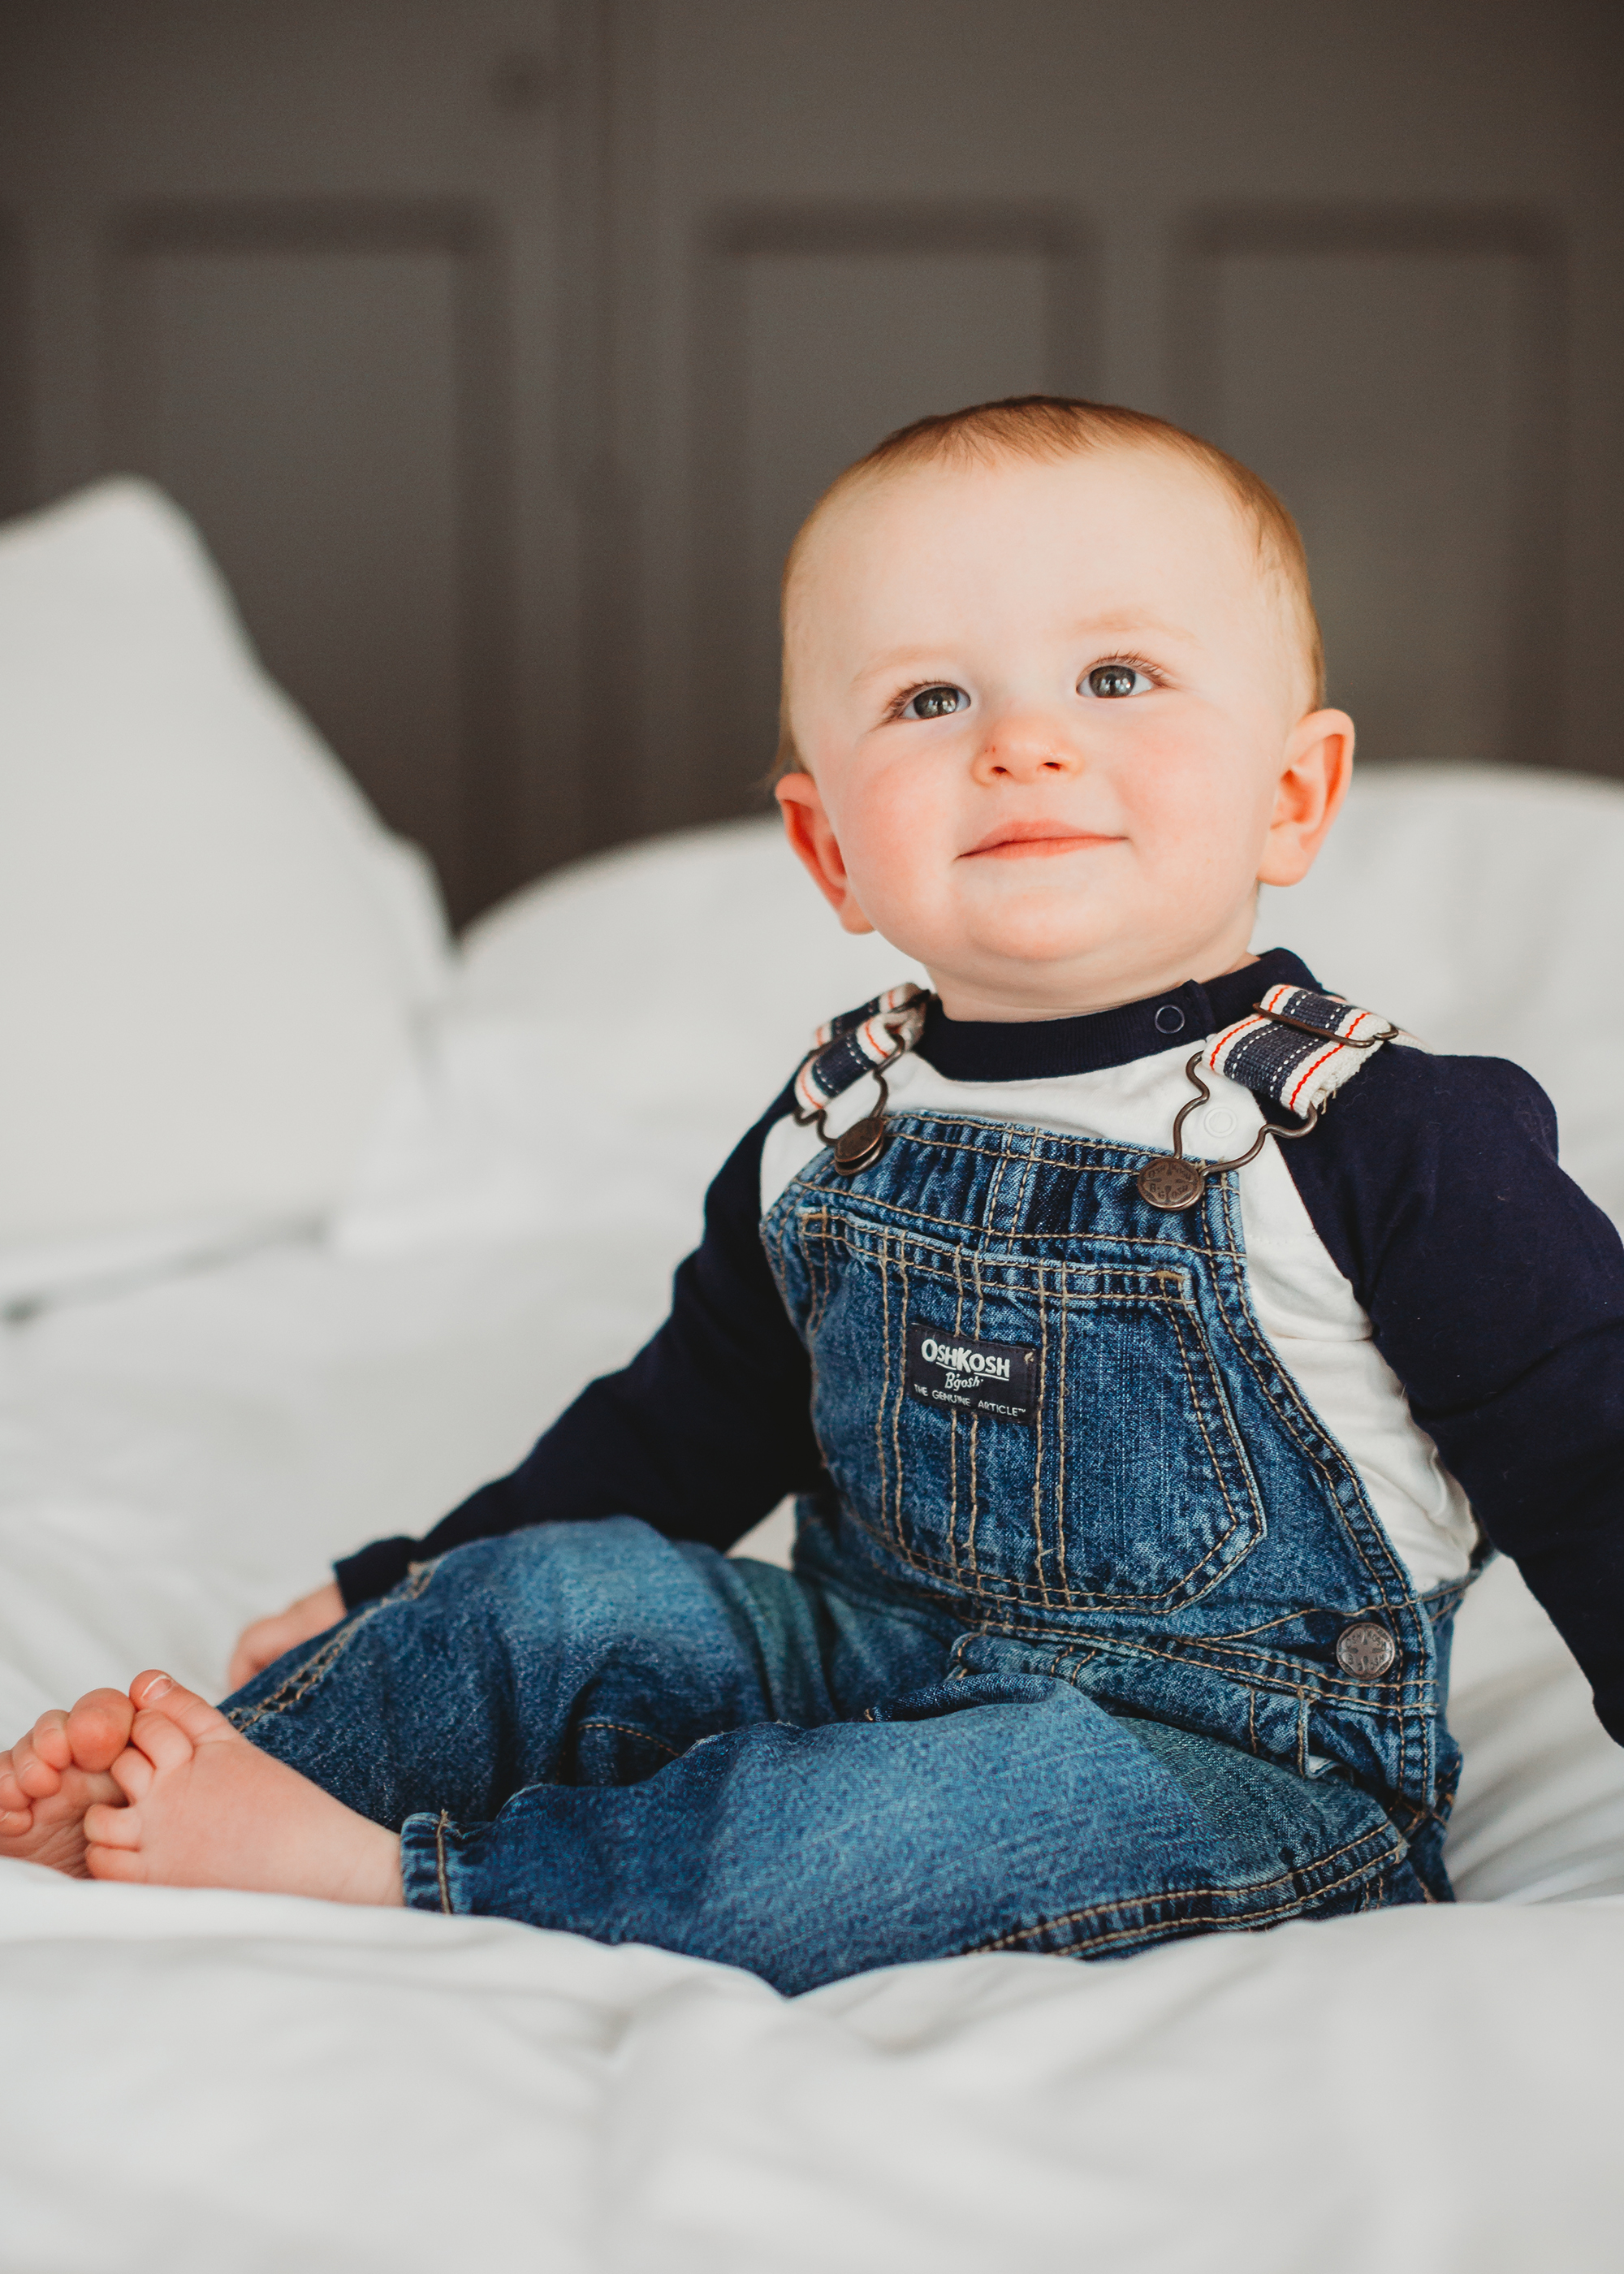 Baby in overalls! Boston family photographer shares favorite outfits for baby portrait sessions.